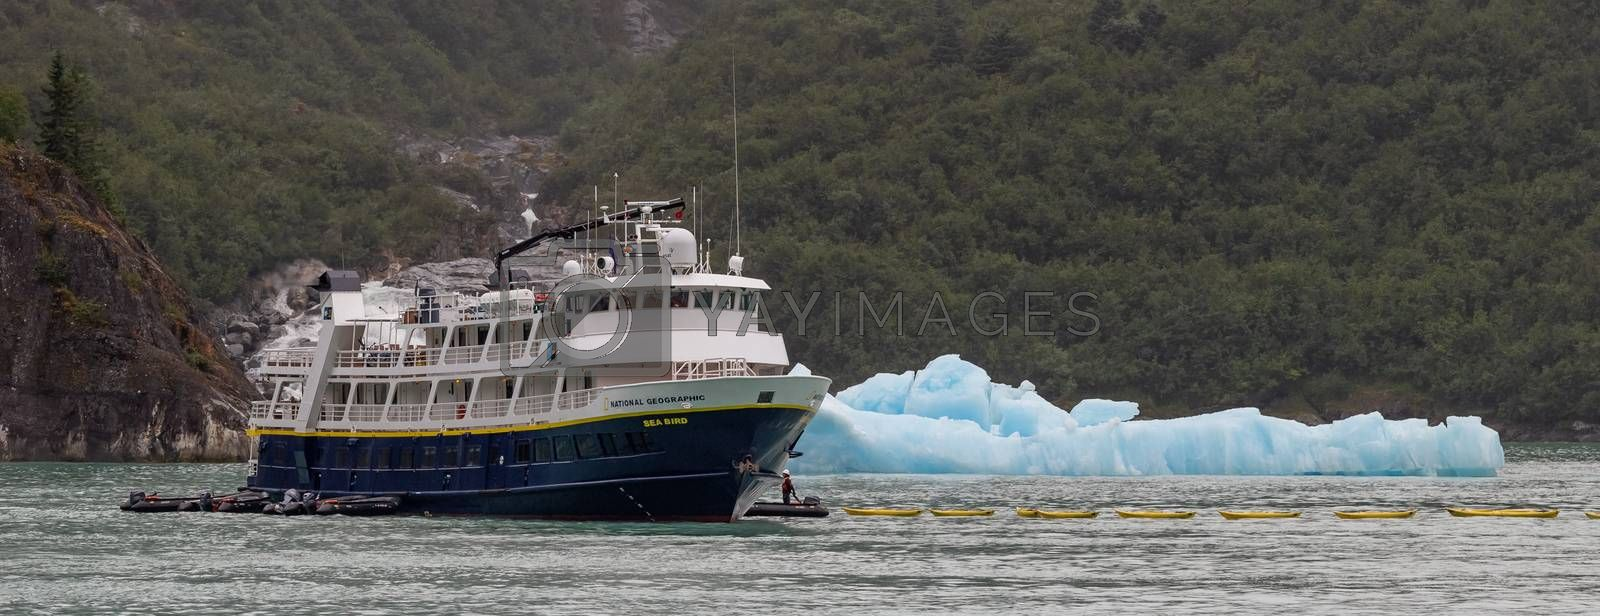 Tracy Arm Fjord, Alaska, US - August 23, 2018: National Geographic's Sea Bird vessel drifting by an iceberg with some personnel in a small boat next to it. Close view.